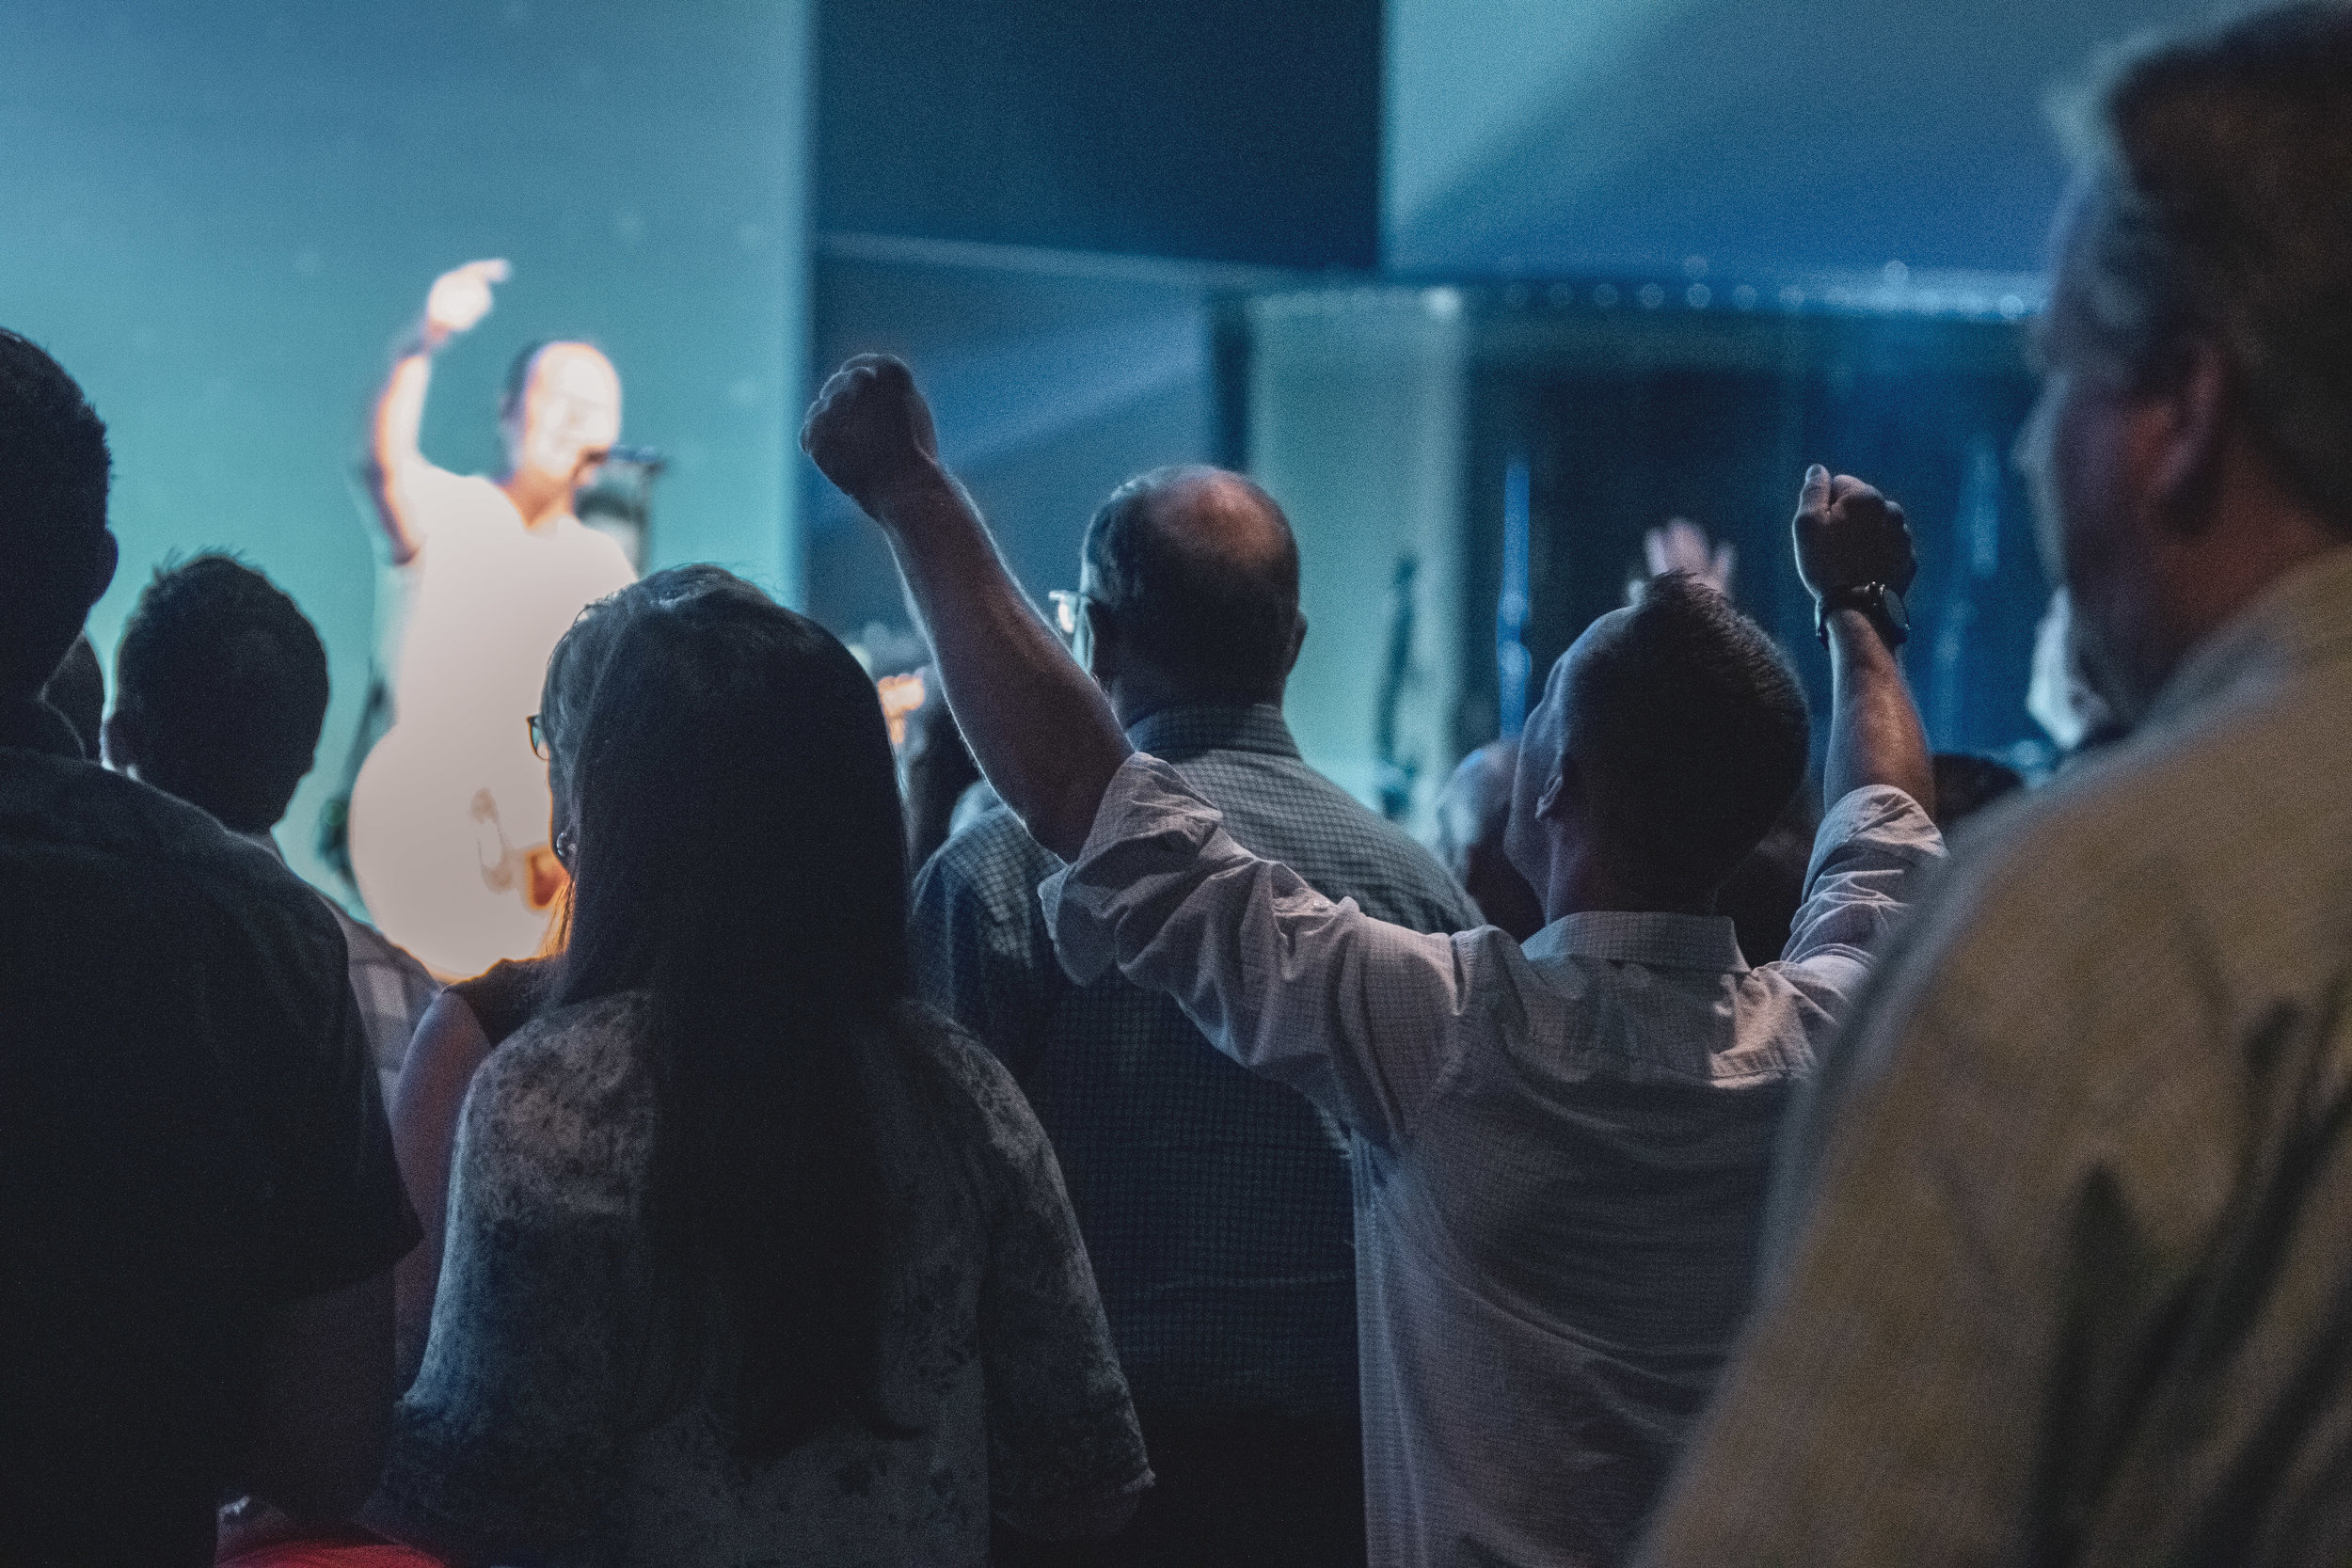 Worship in services. - We gather for unashamed worship of God, believing that he deserves our highest praise and we need his transforming truth.